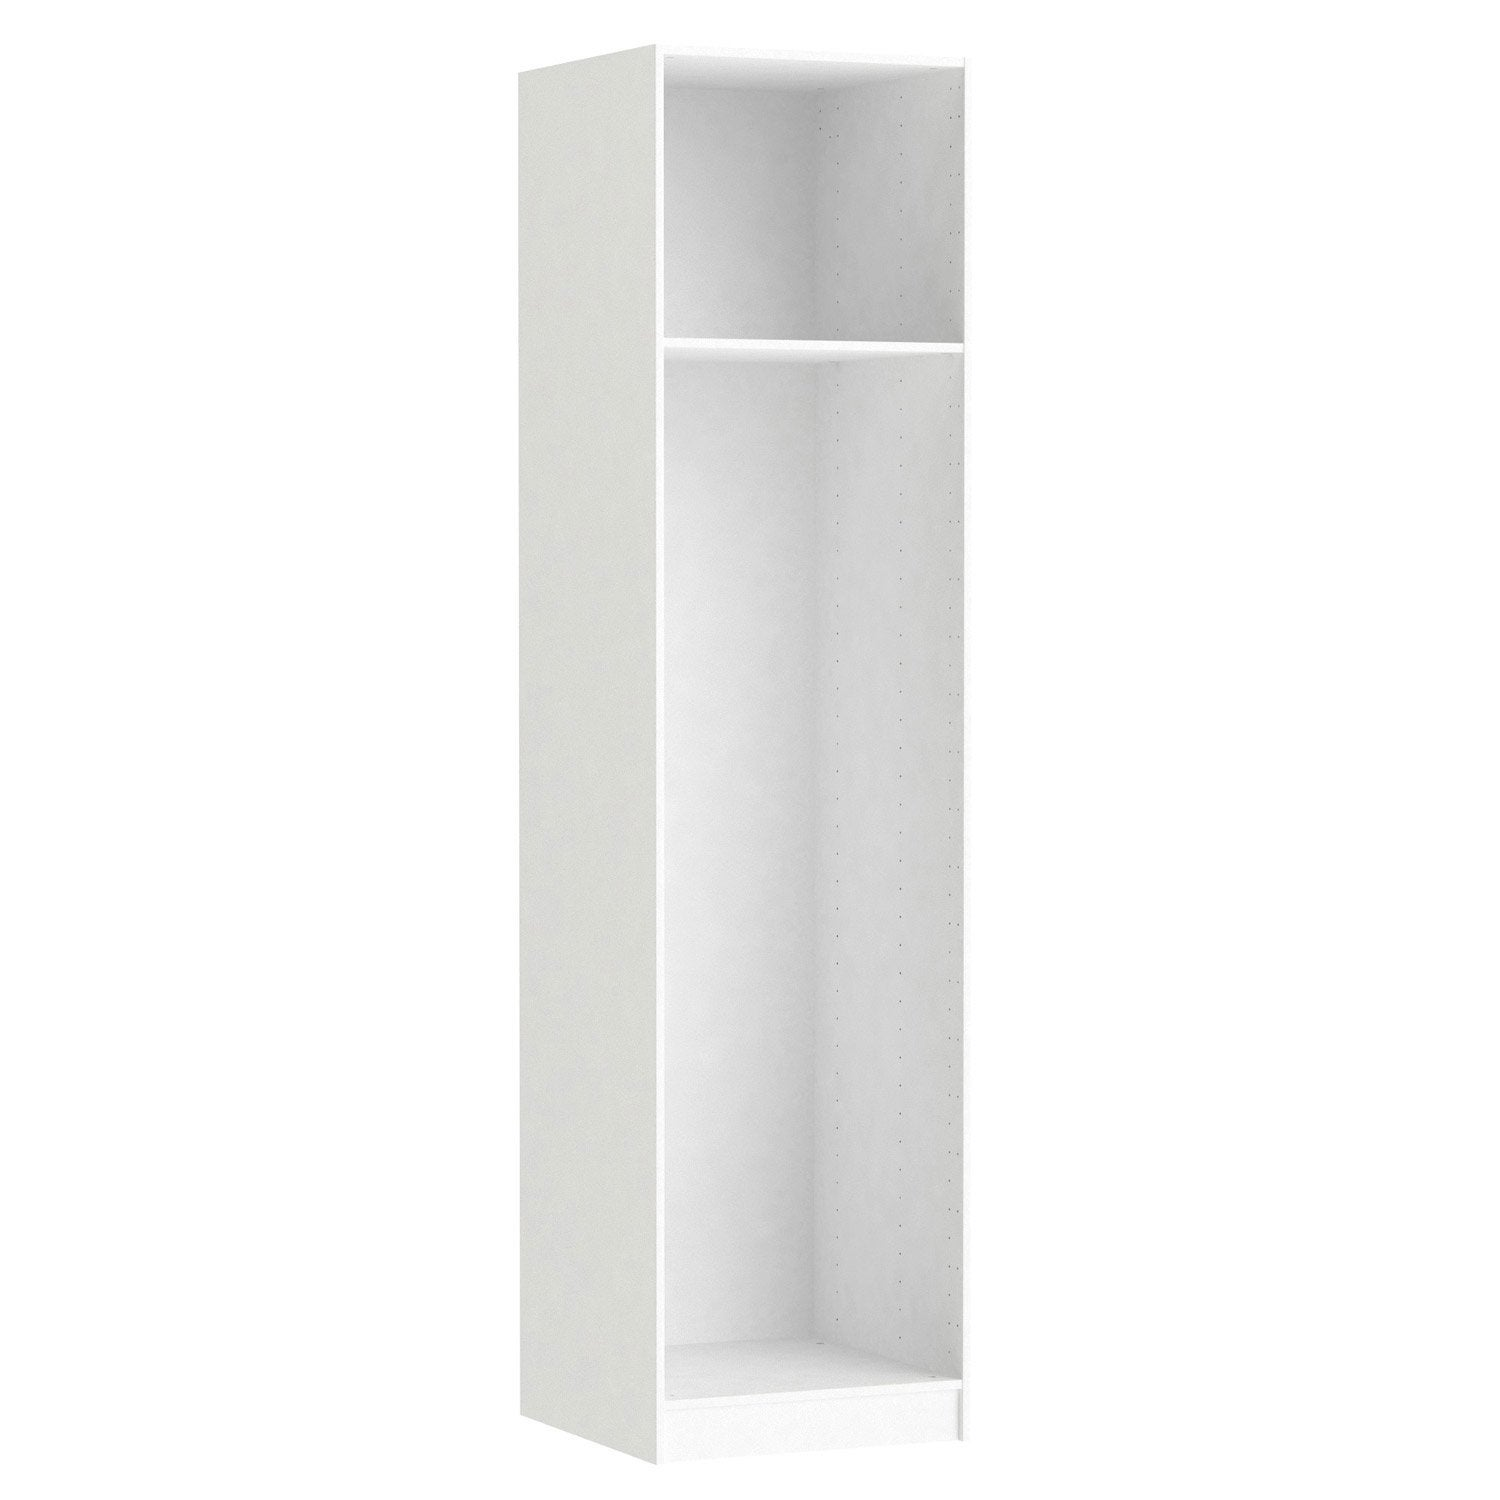 Caisson spaceo home 240 x 60 x 60 cm blanc leroy merlin for Caisson cuisine 30 x 70